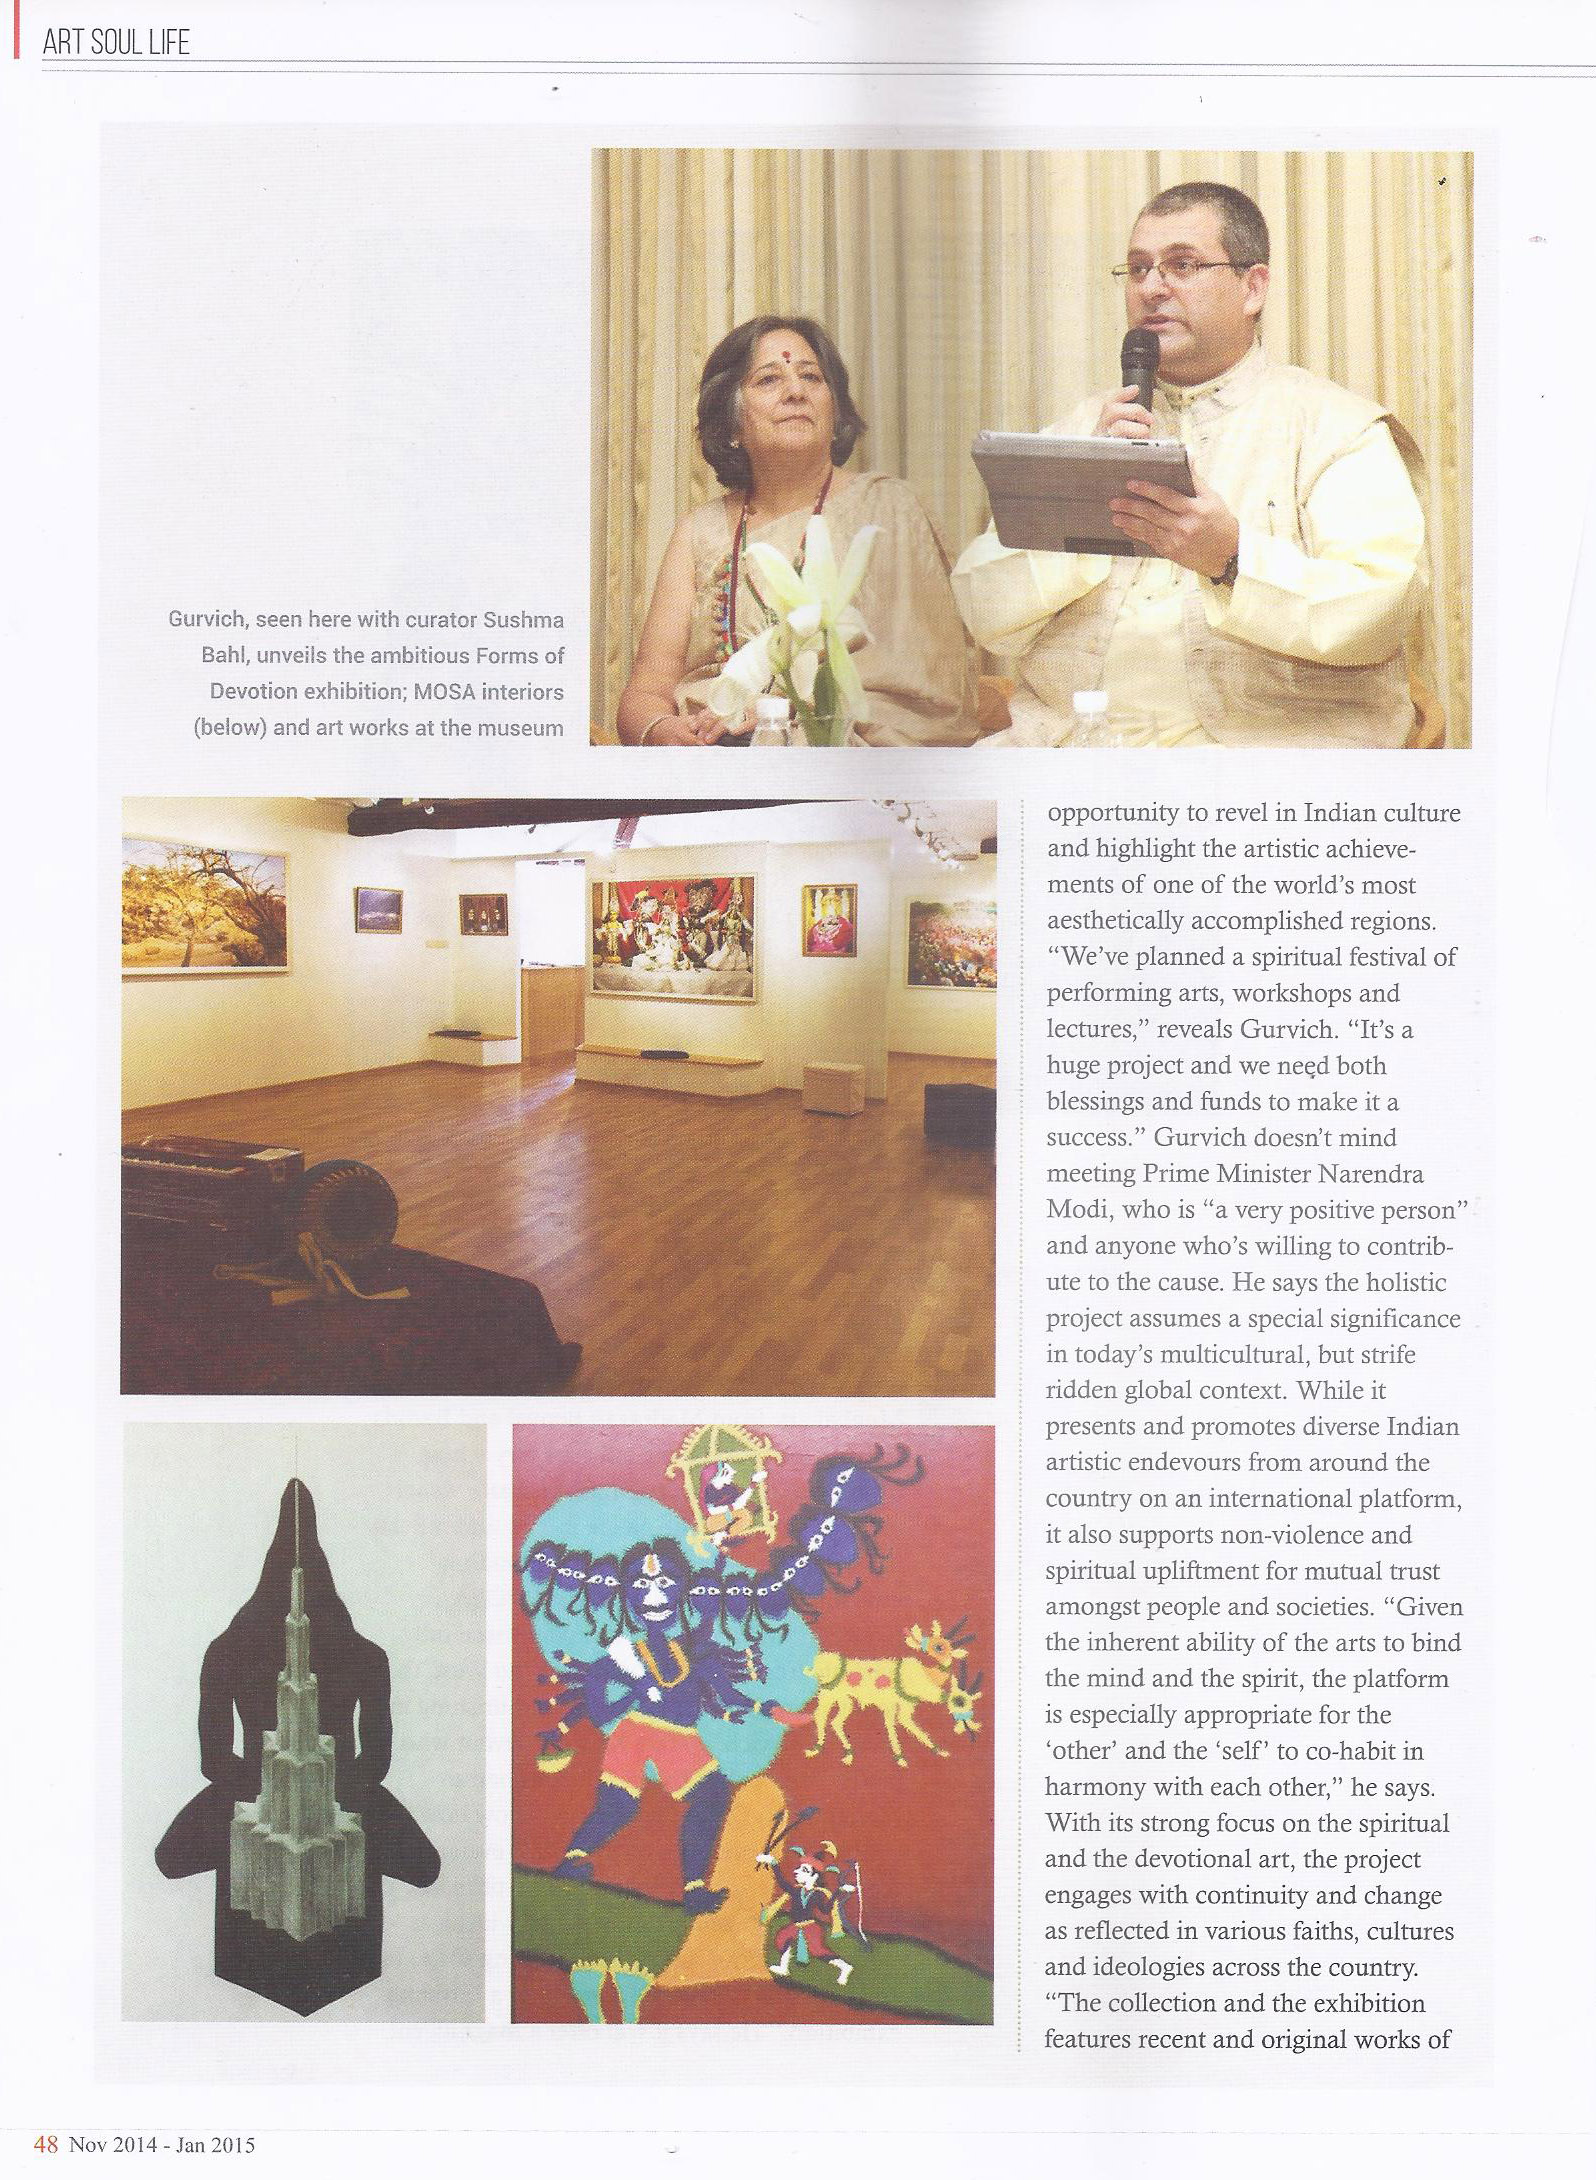 Art Soul Life (National Edition November 2014 - January 2015 Issue)- For the love of god Pg-3